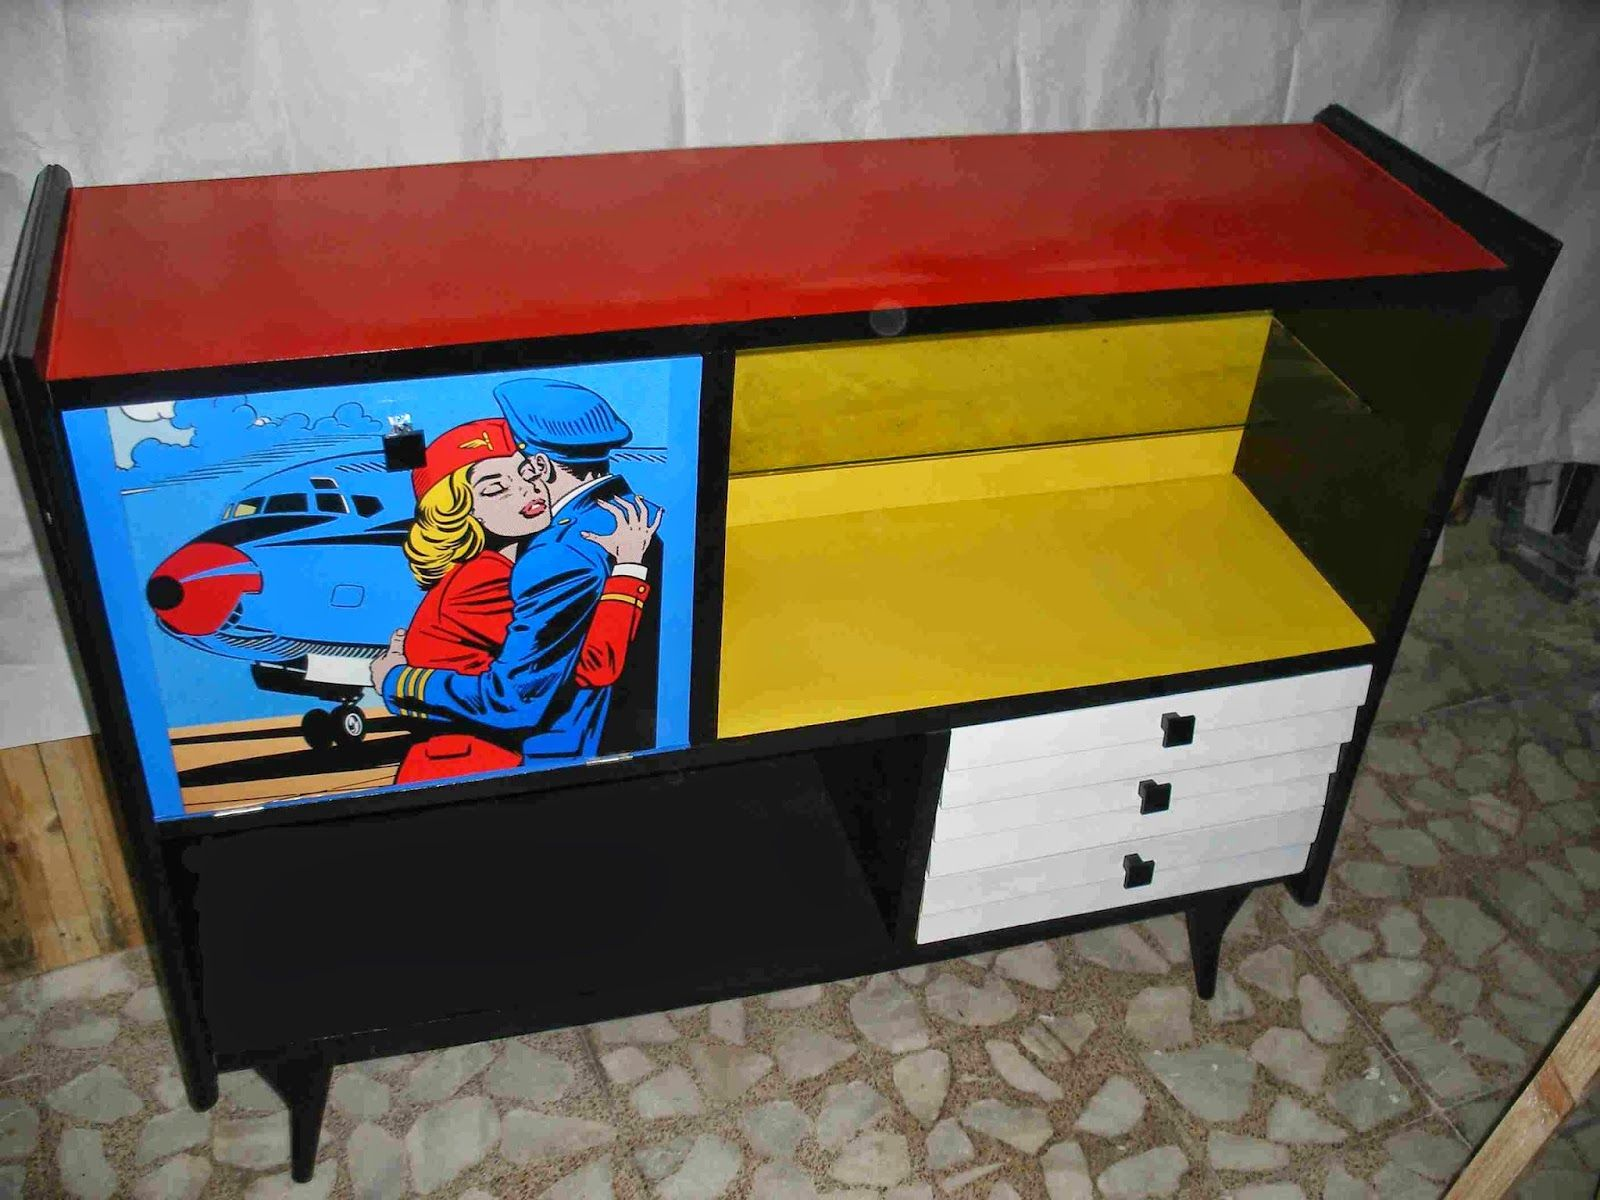 Muebles Pop Art Mueble Restaurado Estilo Pop Art Aquilinogomez Blogspot